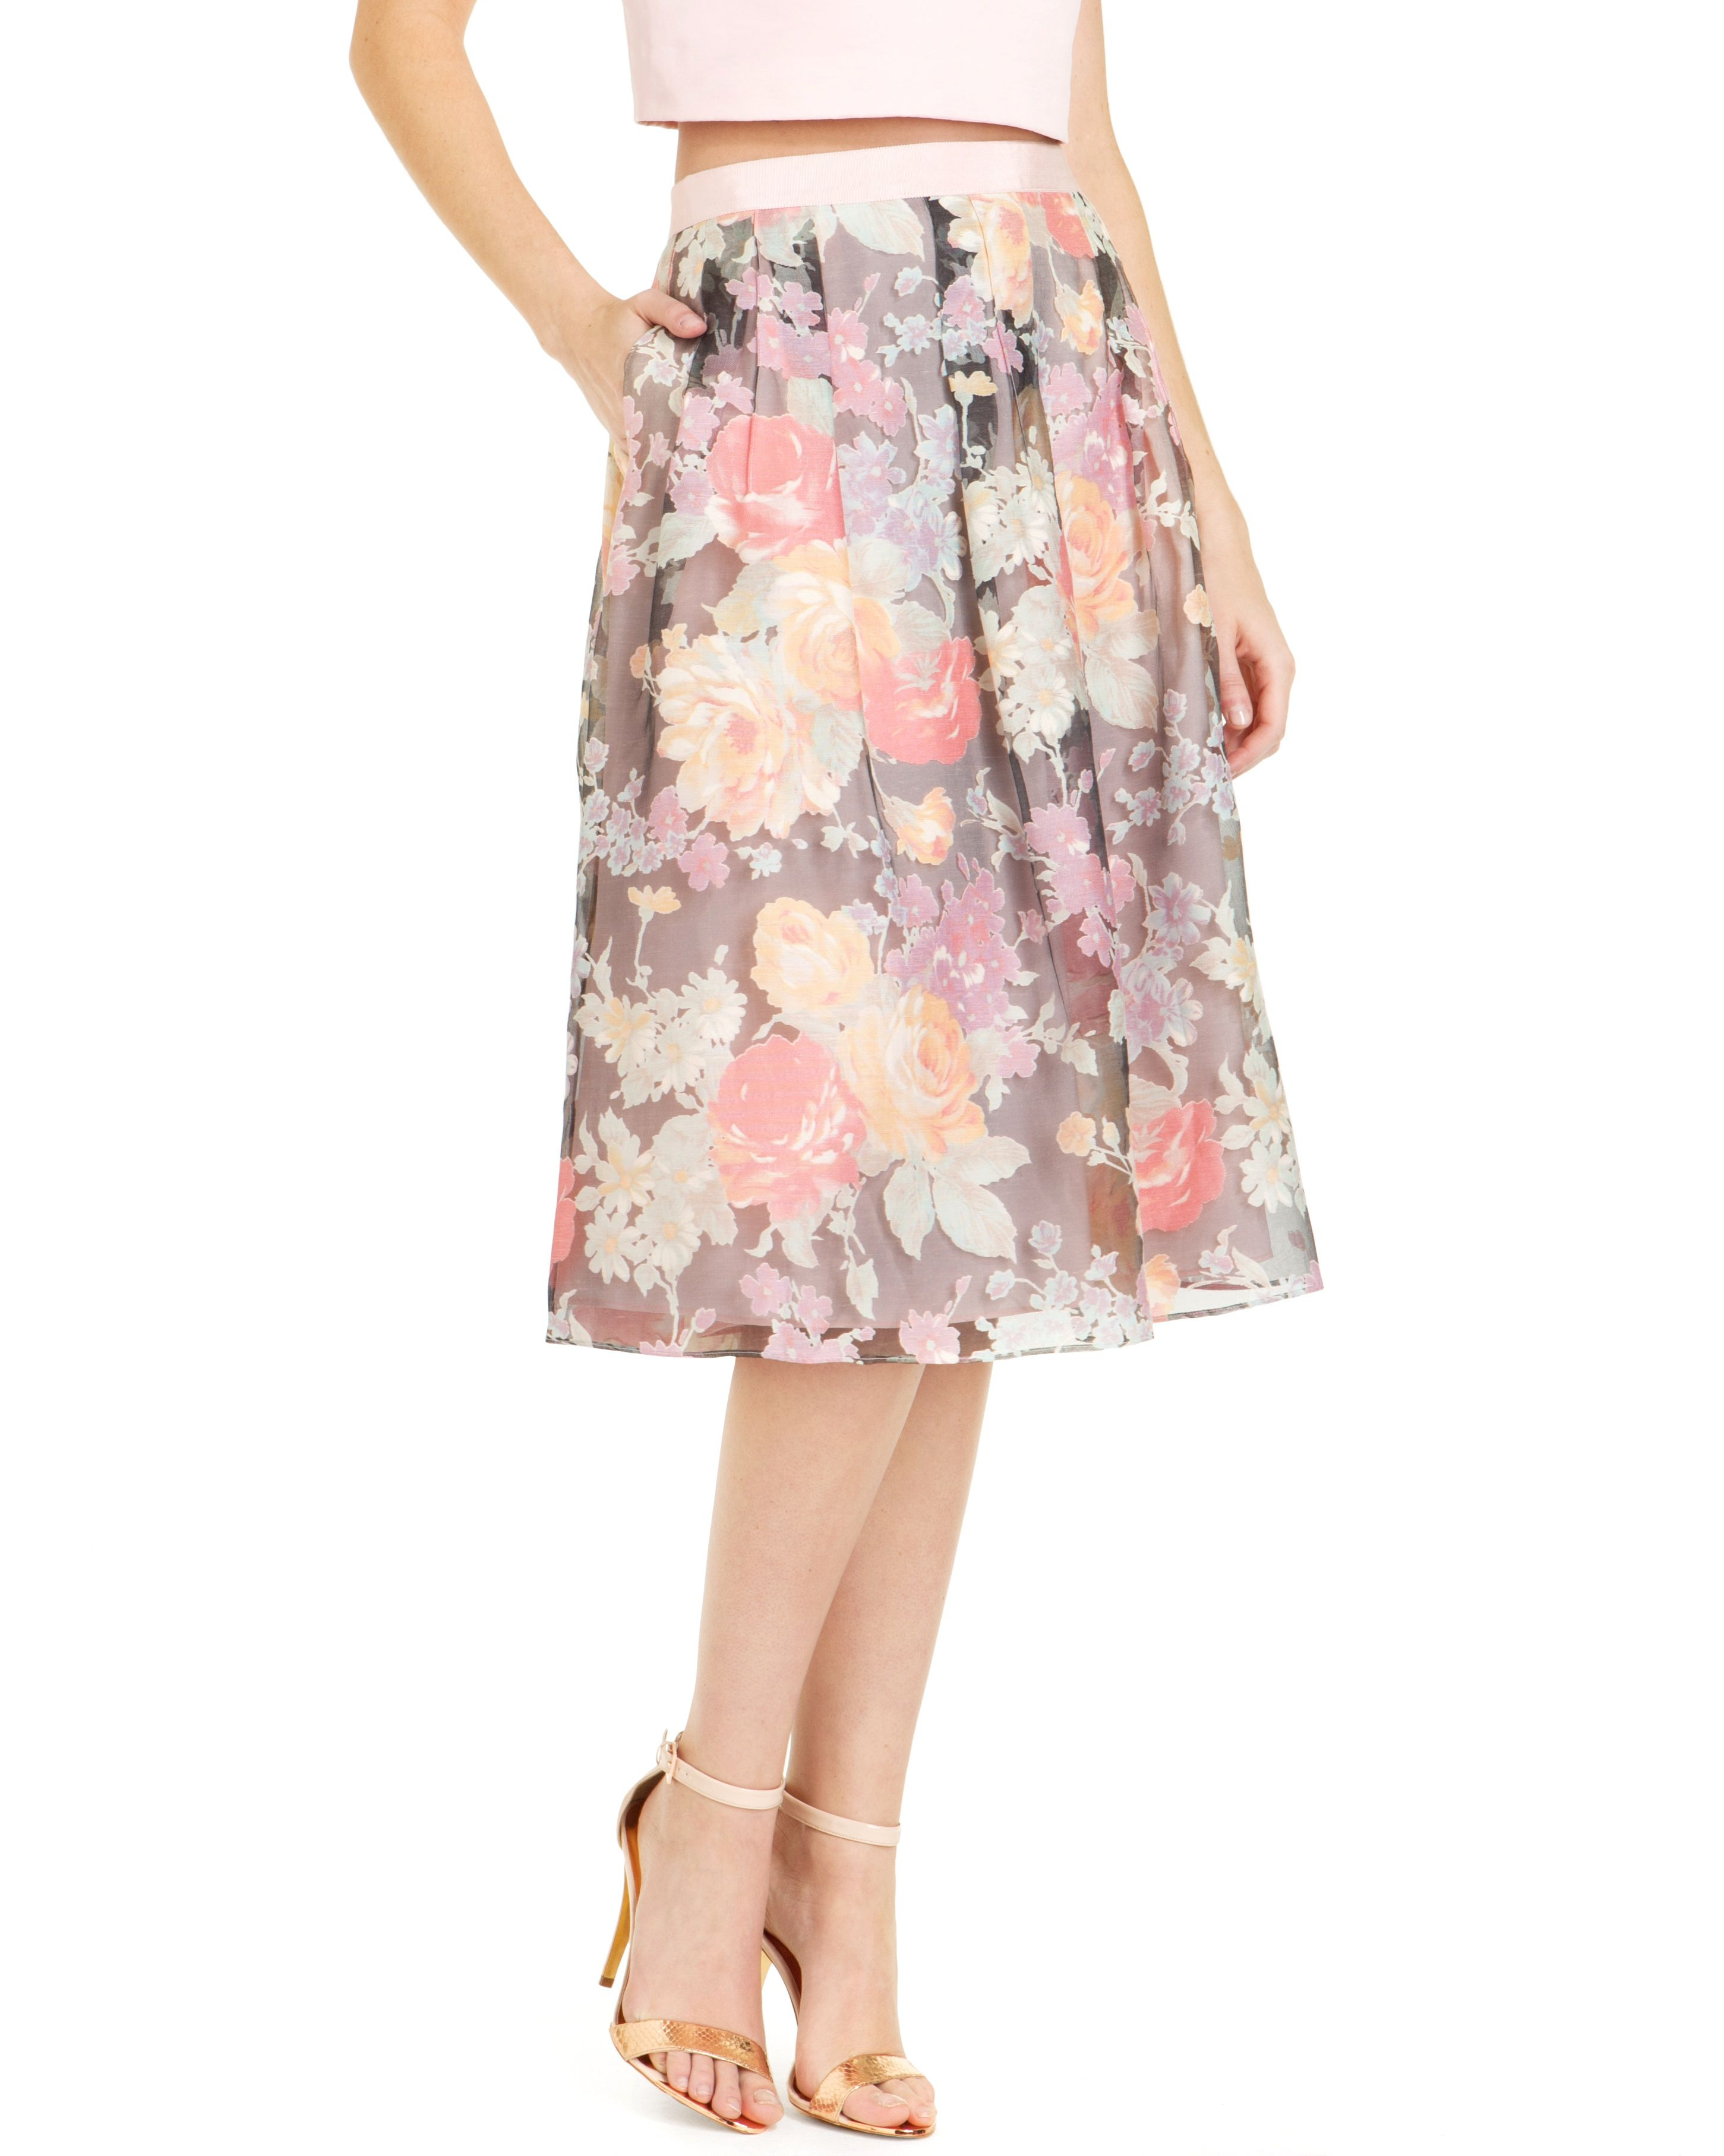 Ted baker Alaena Colourful Floral Midi Skirt in Pink | Lyst